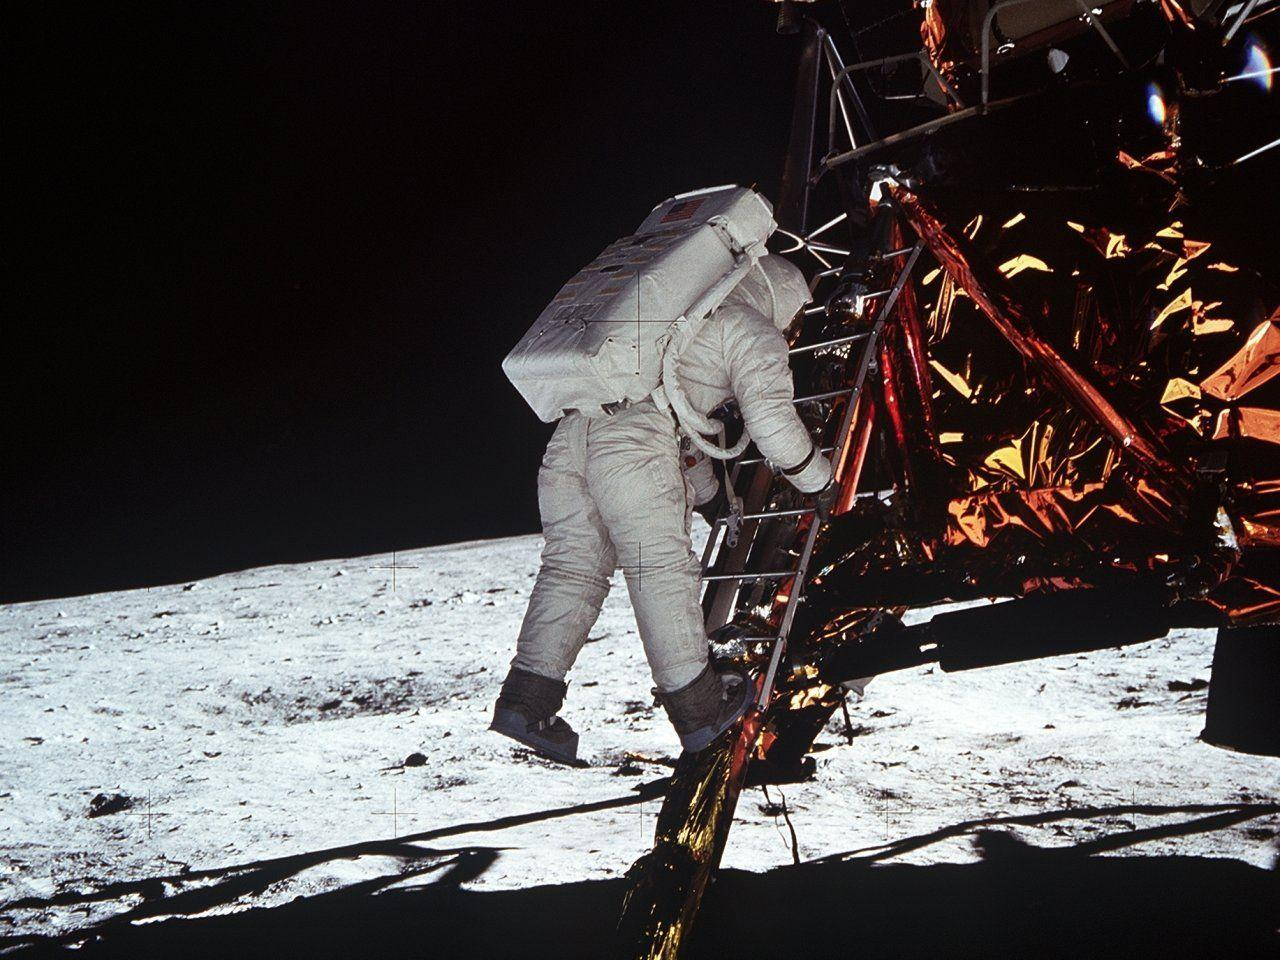 Apollo 11 Aldrin One Small Step Desktop Wallpapers